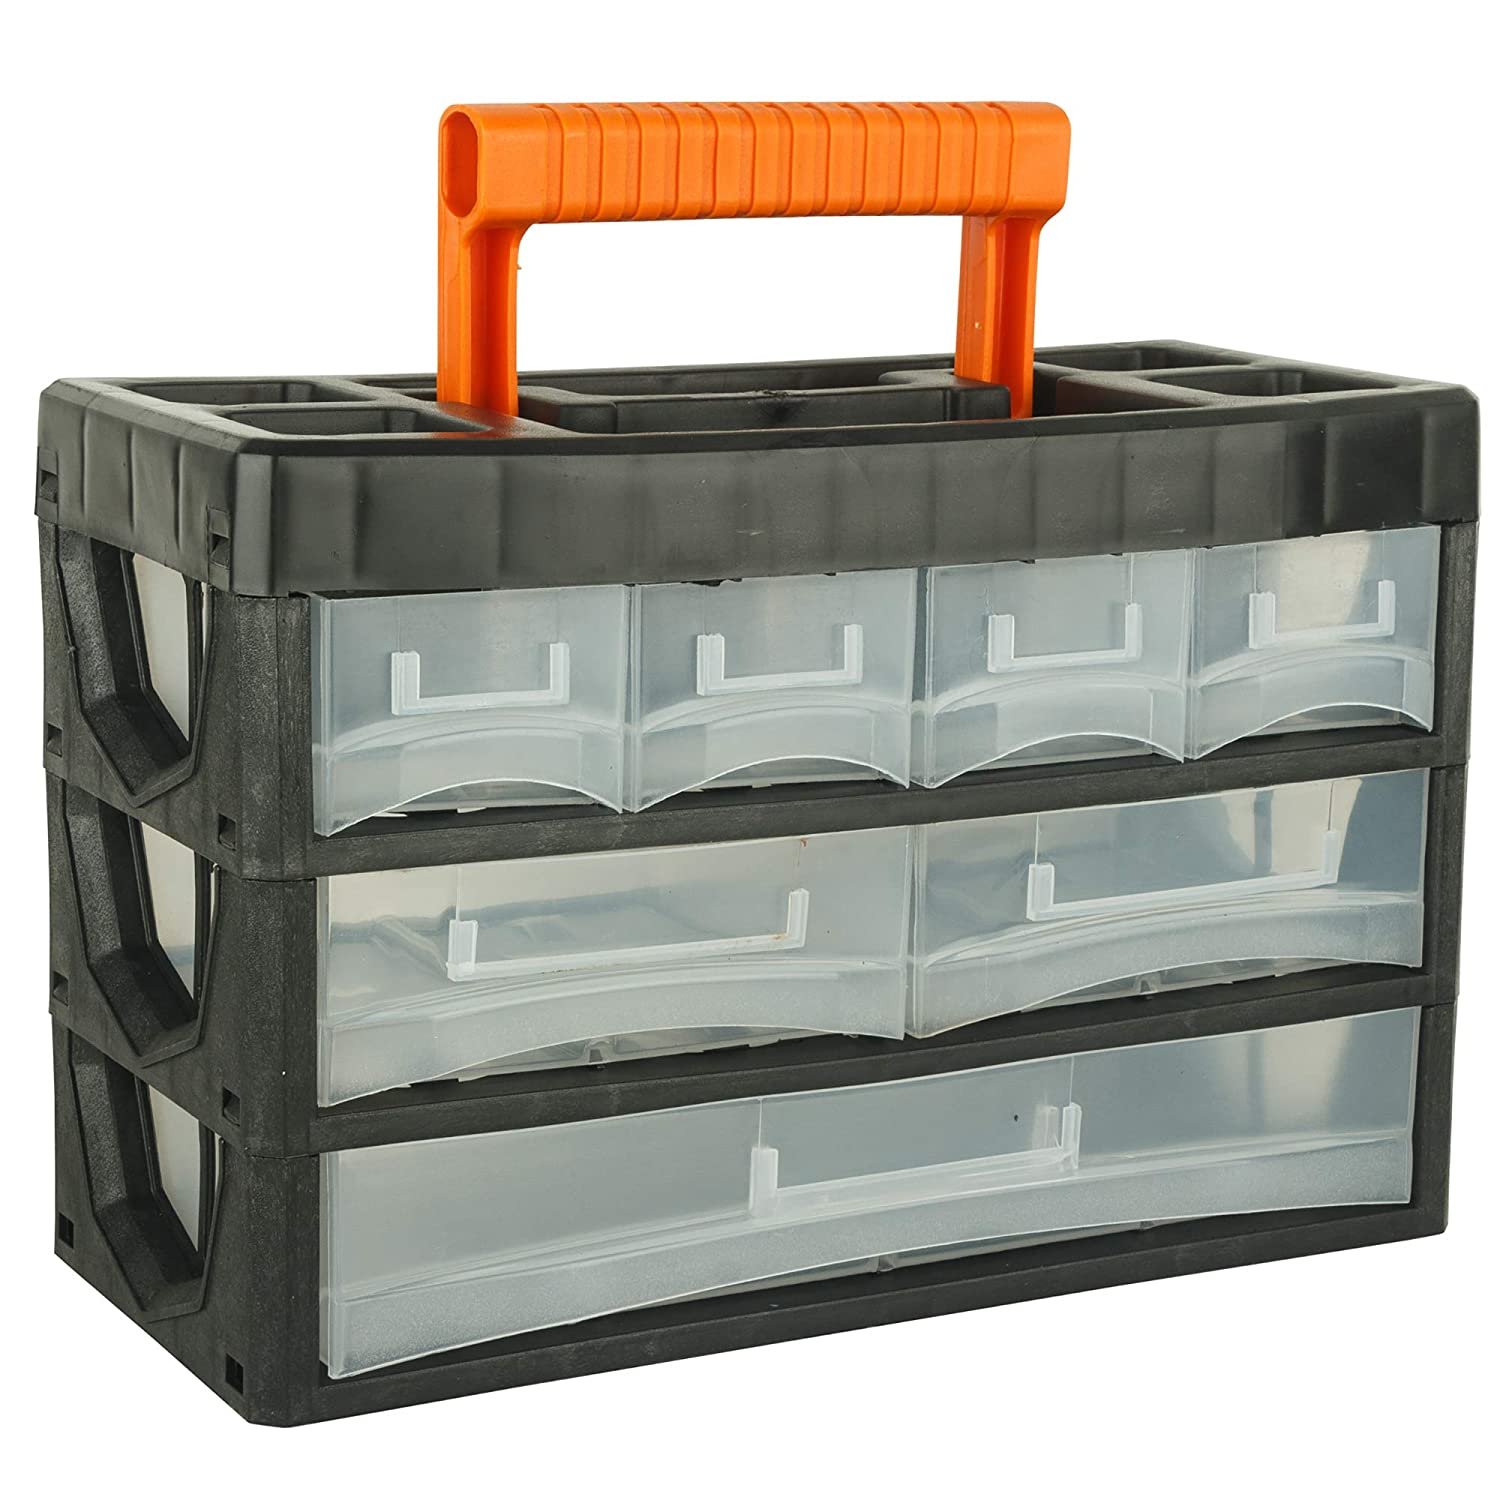 BLACK+DECKER BDST73829-8 Small Portable Cabinet for Multi-Purpose Home/Tool Storage with Carry Handle (7 Drawers)